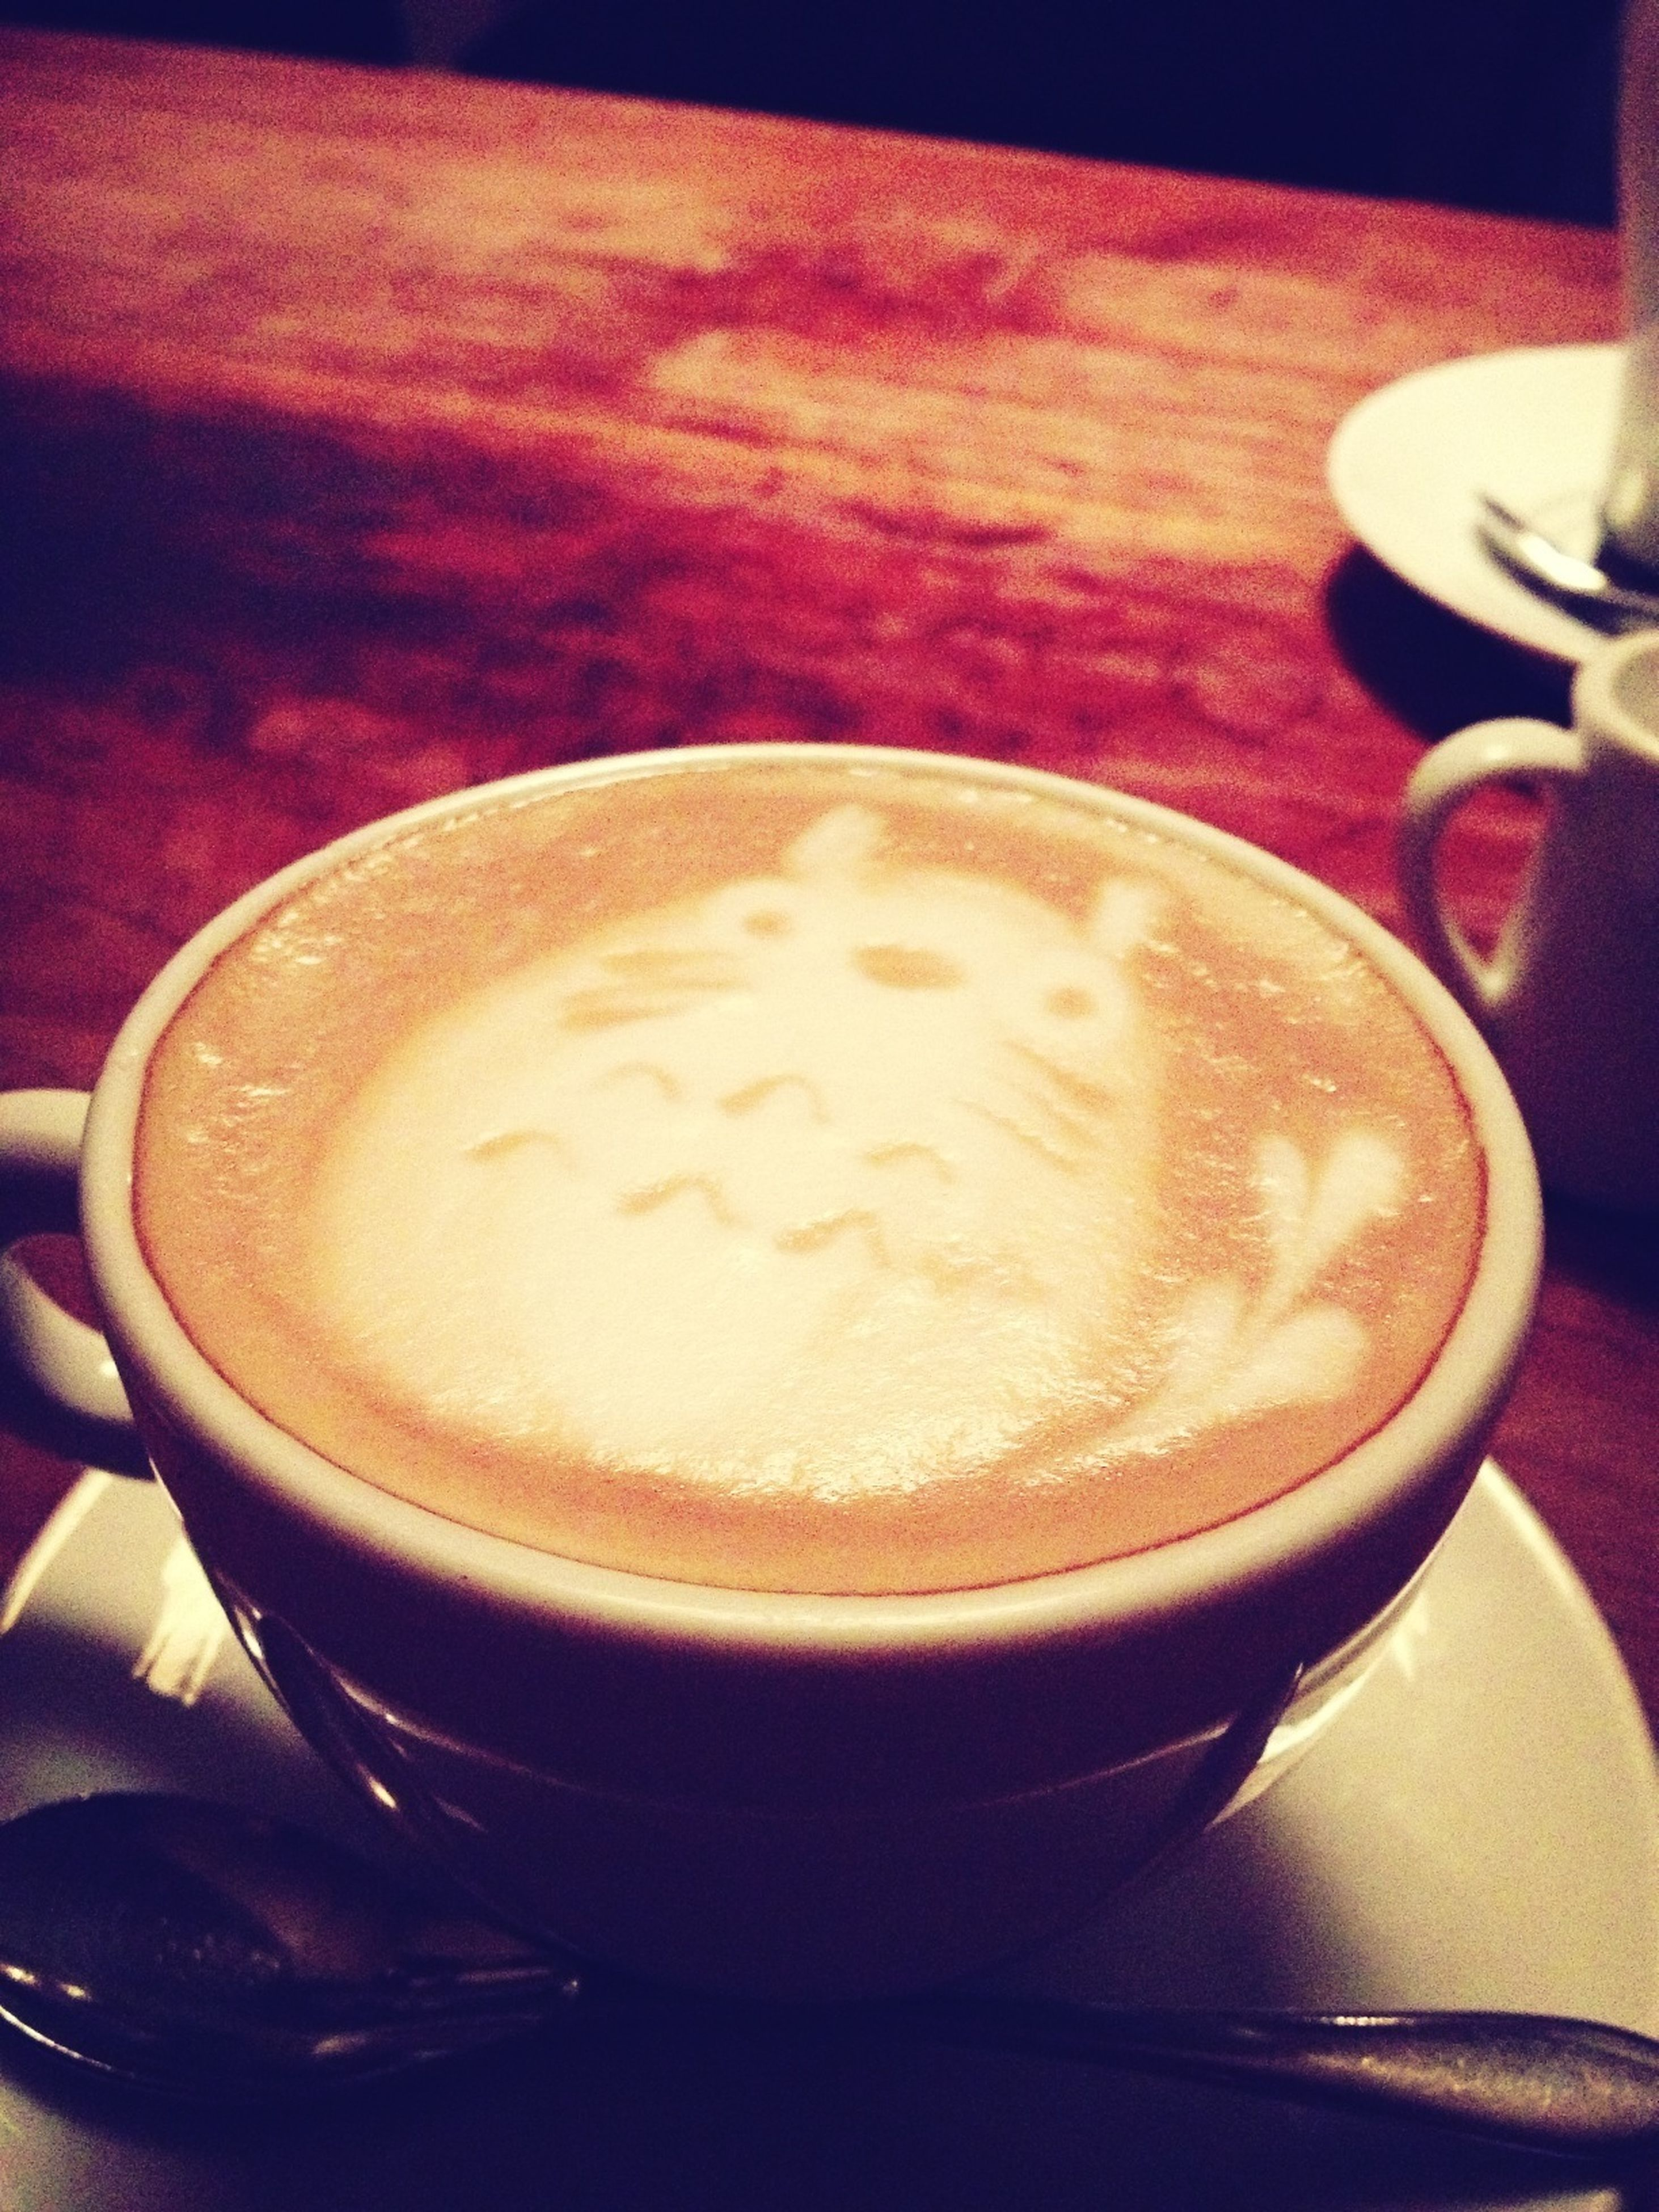 drink, food and drink, coffee cup, refreshment, indoors, frothy drink, coffee - drink, table, cappuccino, saucer, freshness, close-up, still life, coffee, froth art, cup, spoon, beverage, high angle view, no people